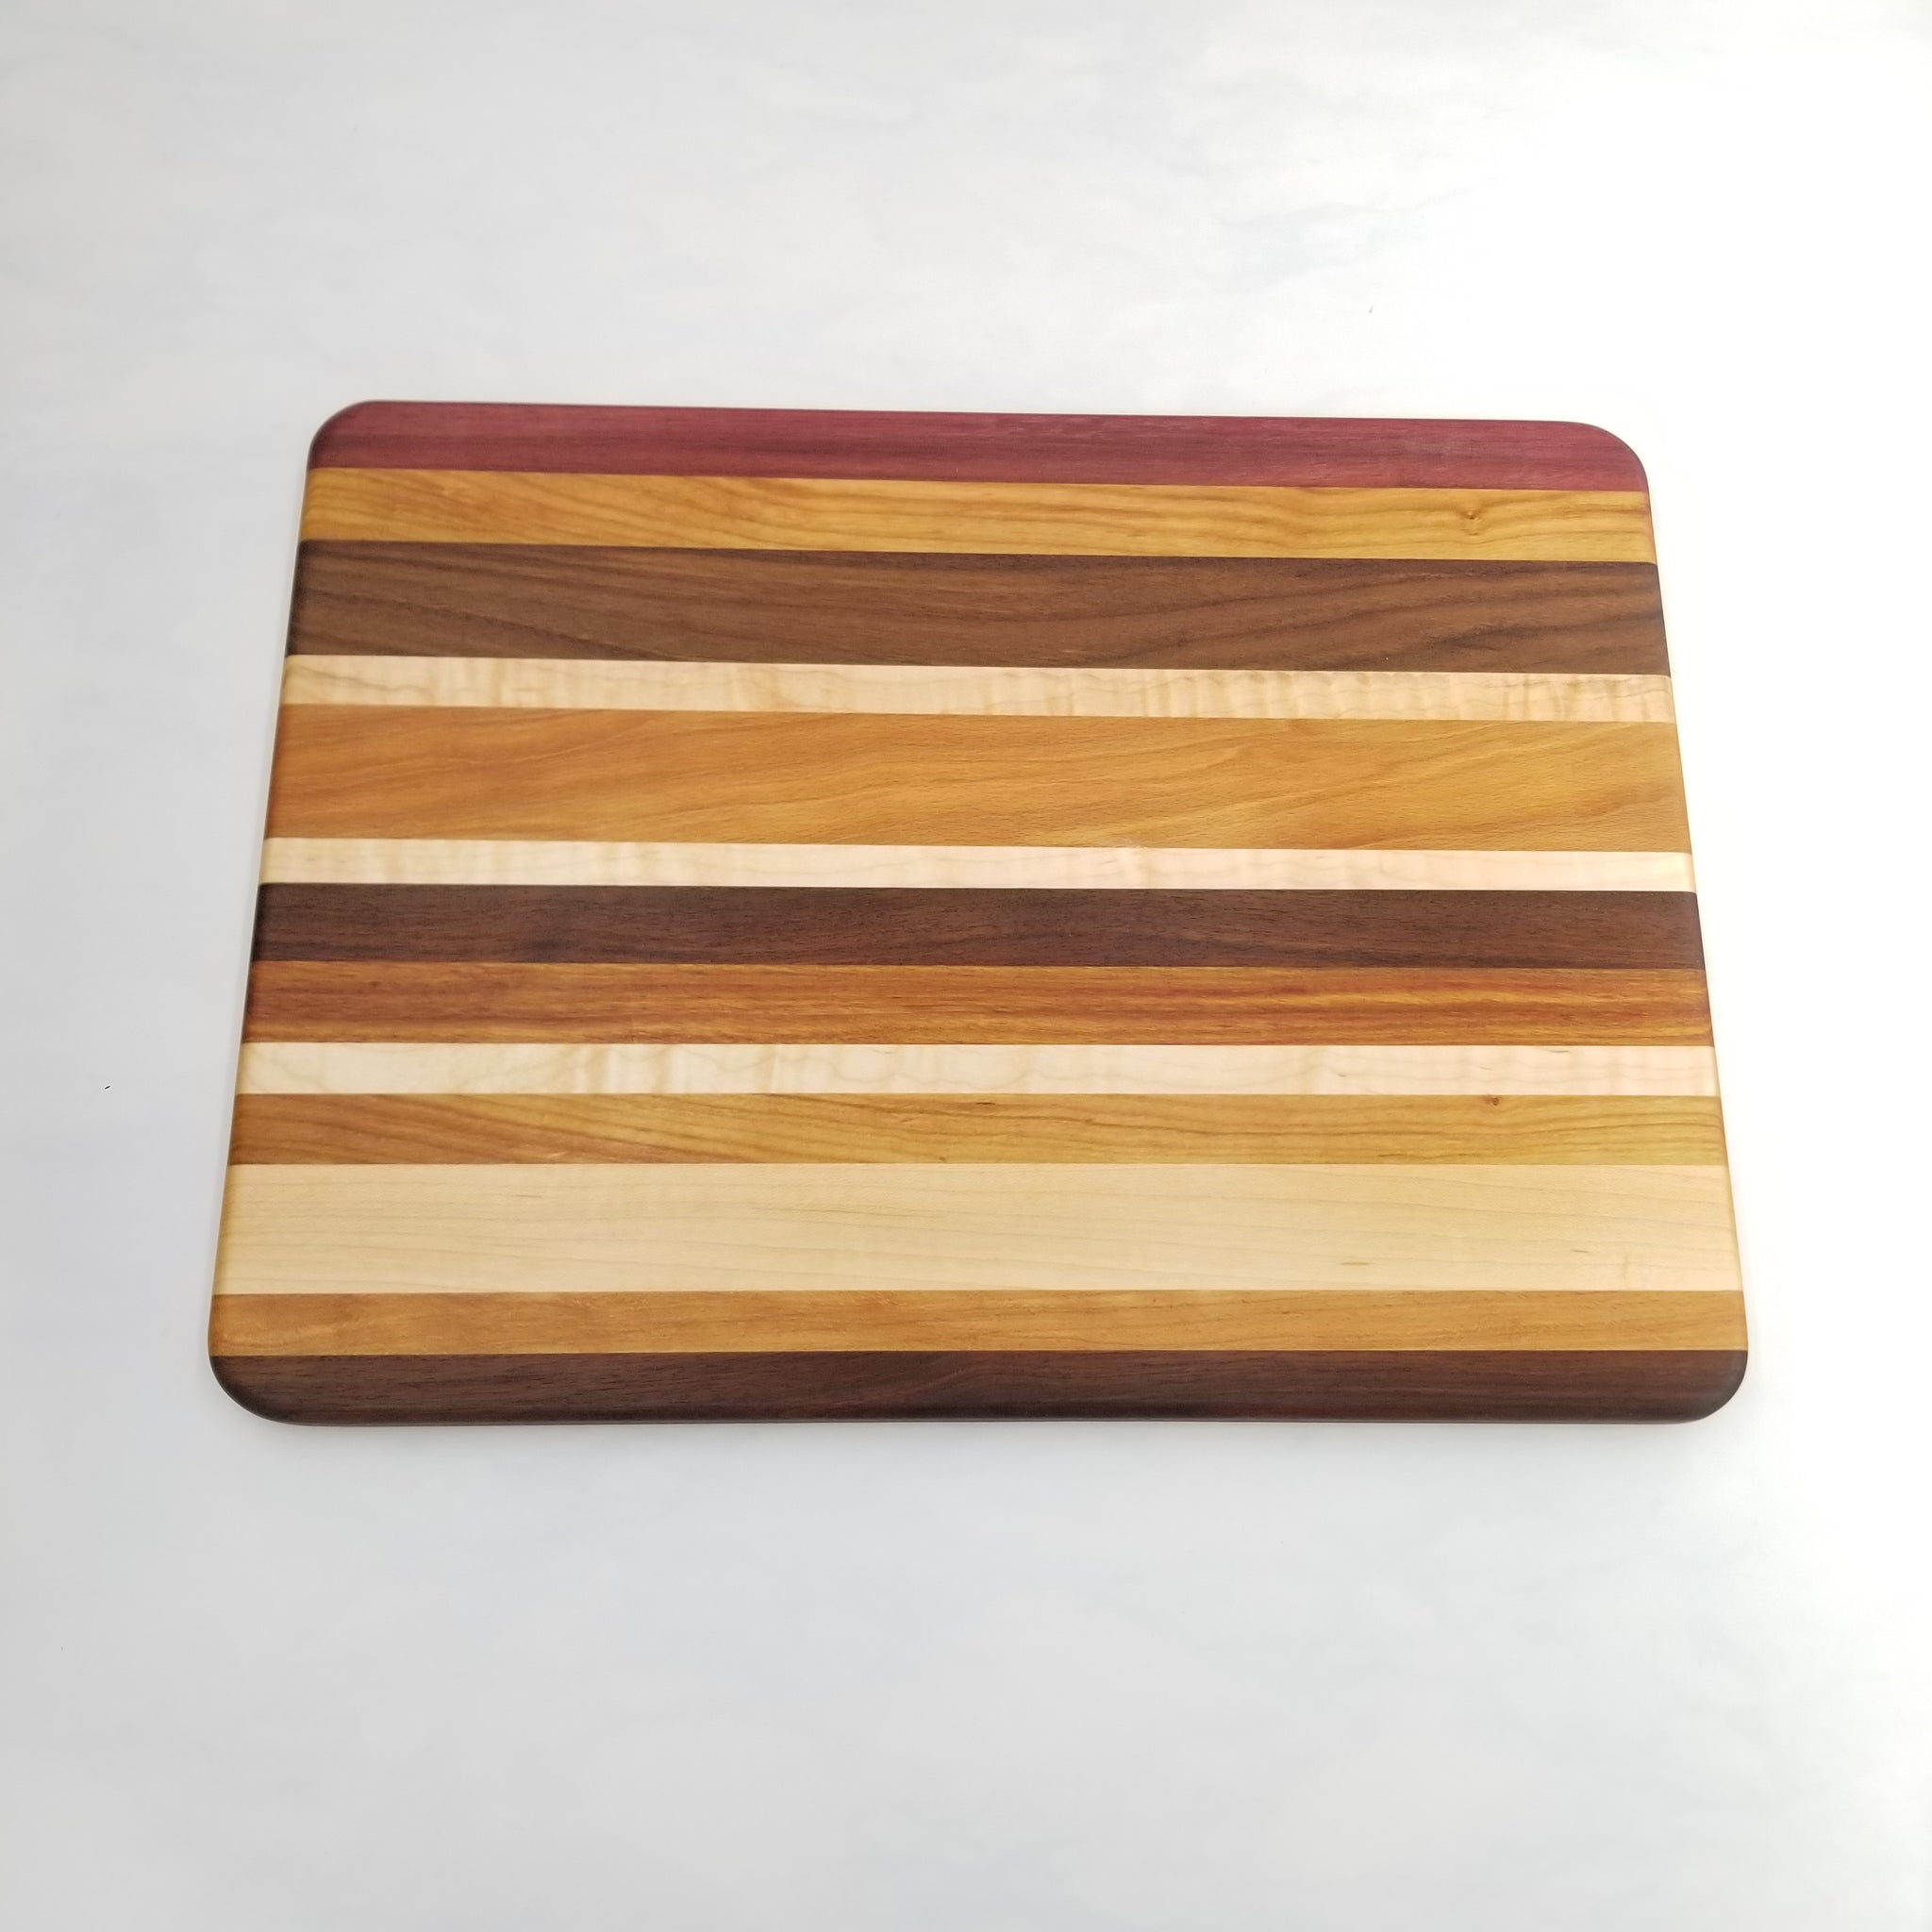 Large Wood Cutting Board | Charcuterie Board